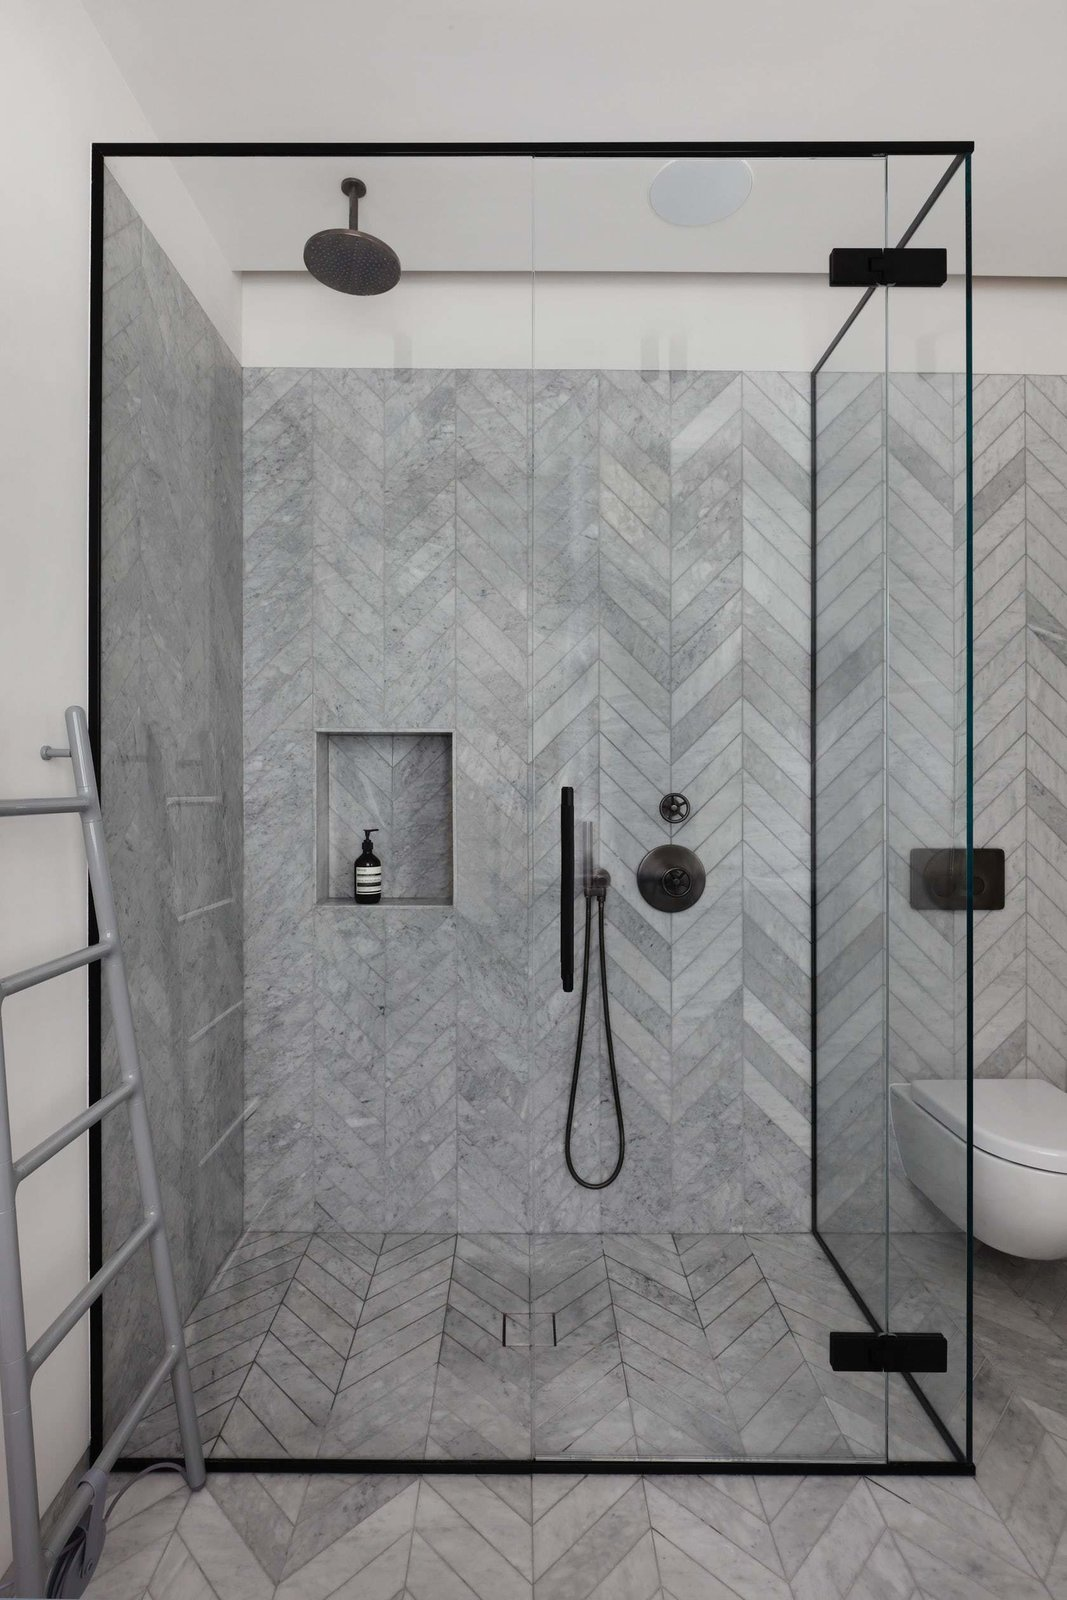 Tagged: Bath Room, Stone Counter, Enclosed Shower, Corner Shower, Marble Floor, One Piece Toilet, and Stone Tile Wall.  Maida Vale Apartment by Leibal